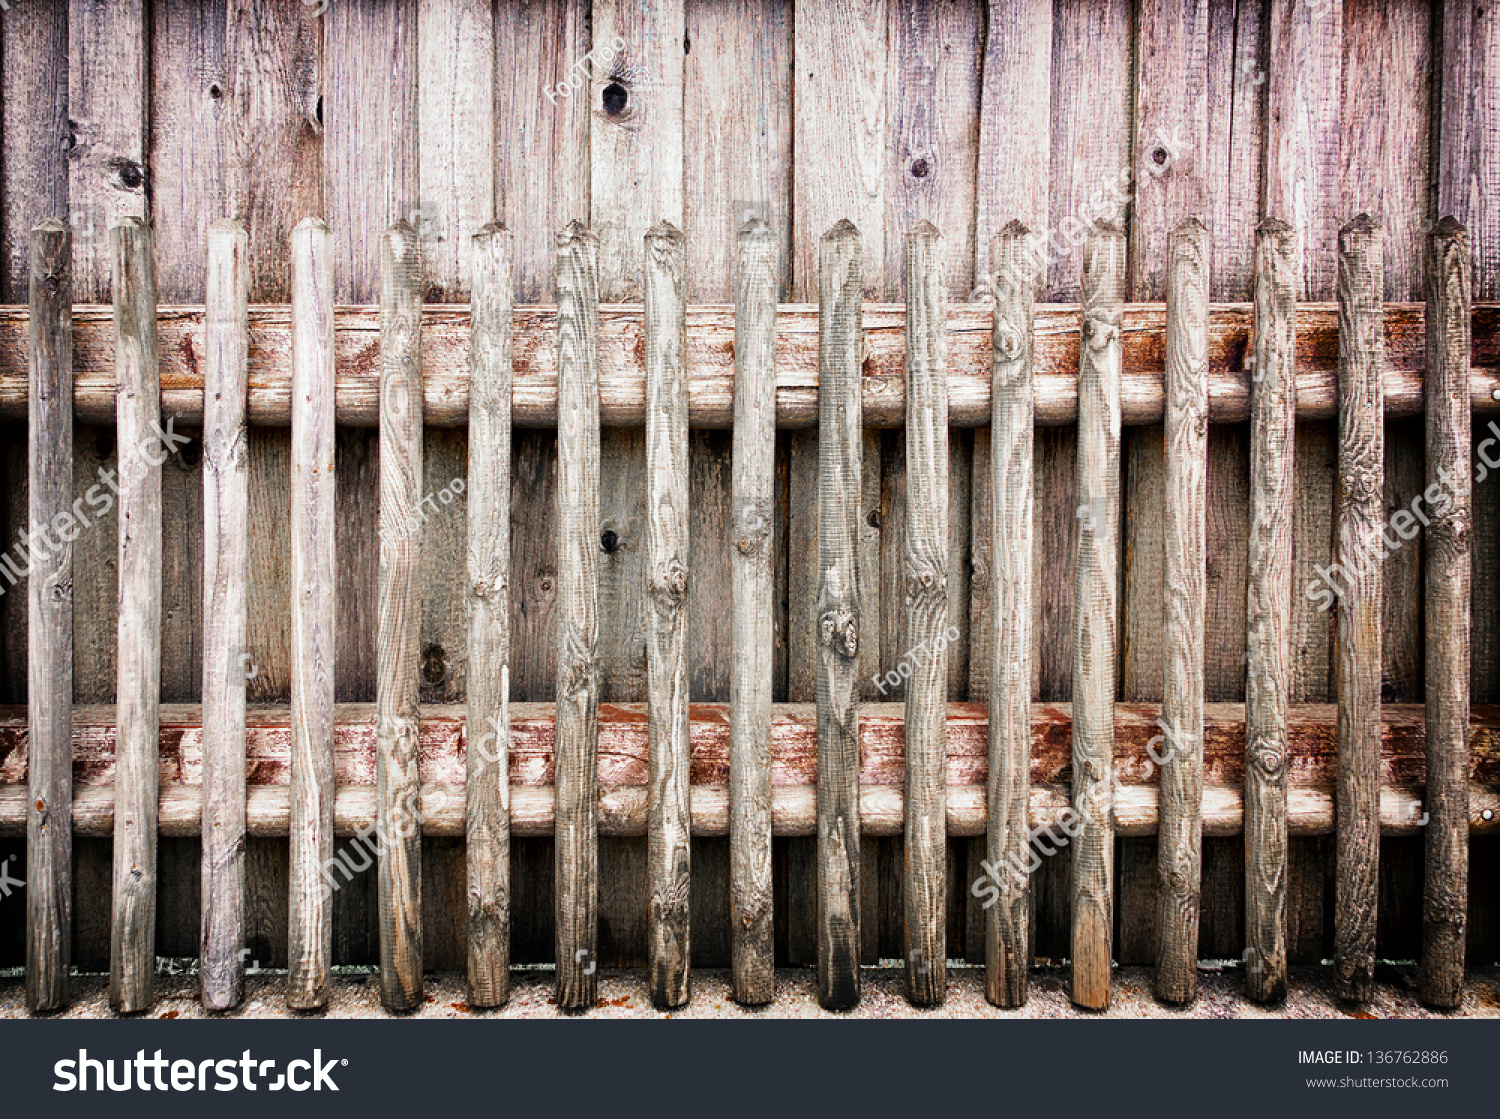 Old Wooden Picket Fence Photo Stock Photo 136762886